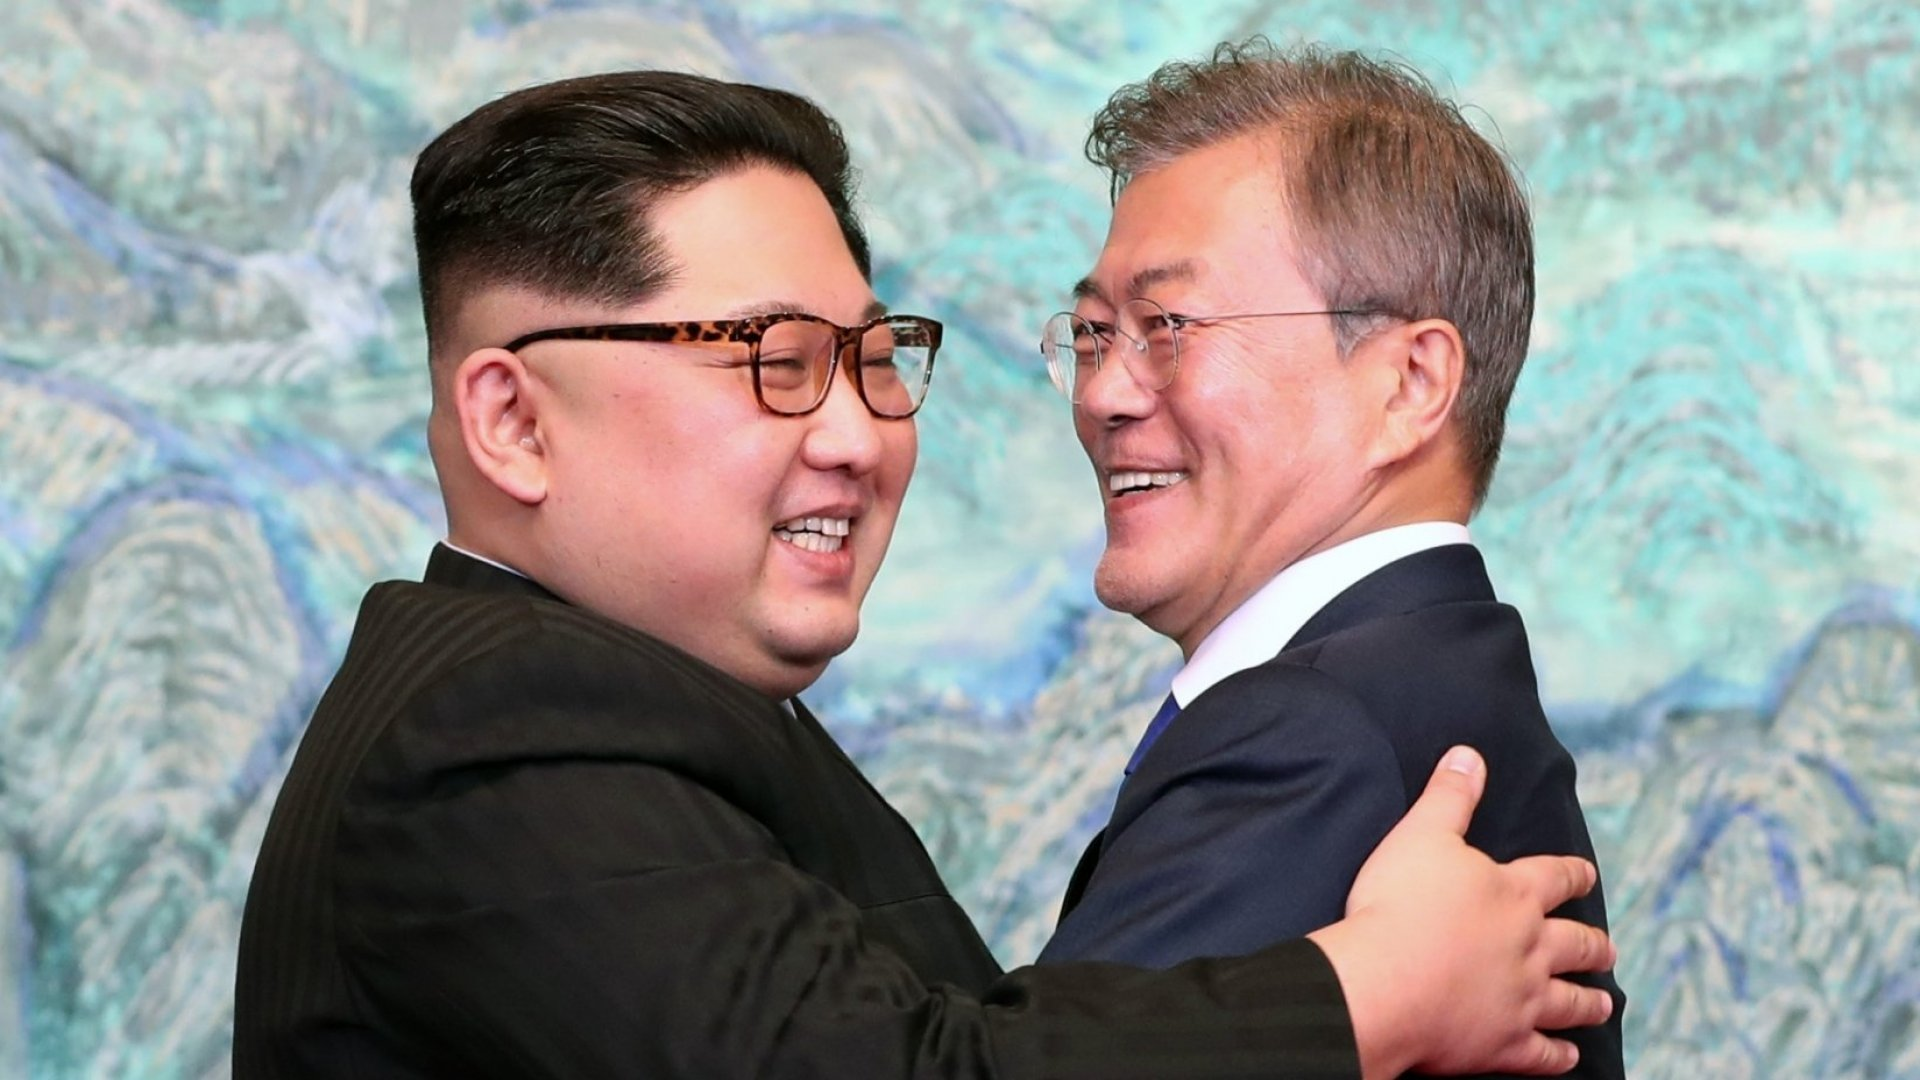 North and South Korea's Historic Meeting: 3 Simple Lessons Every Leader Can Learn